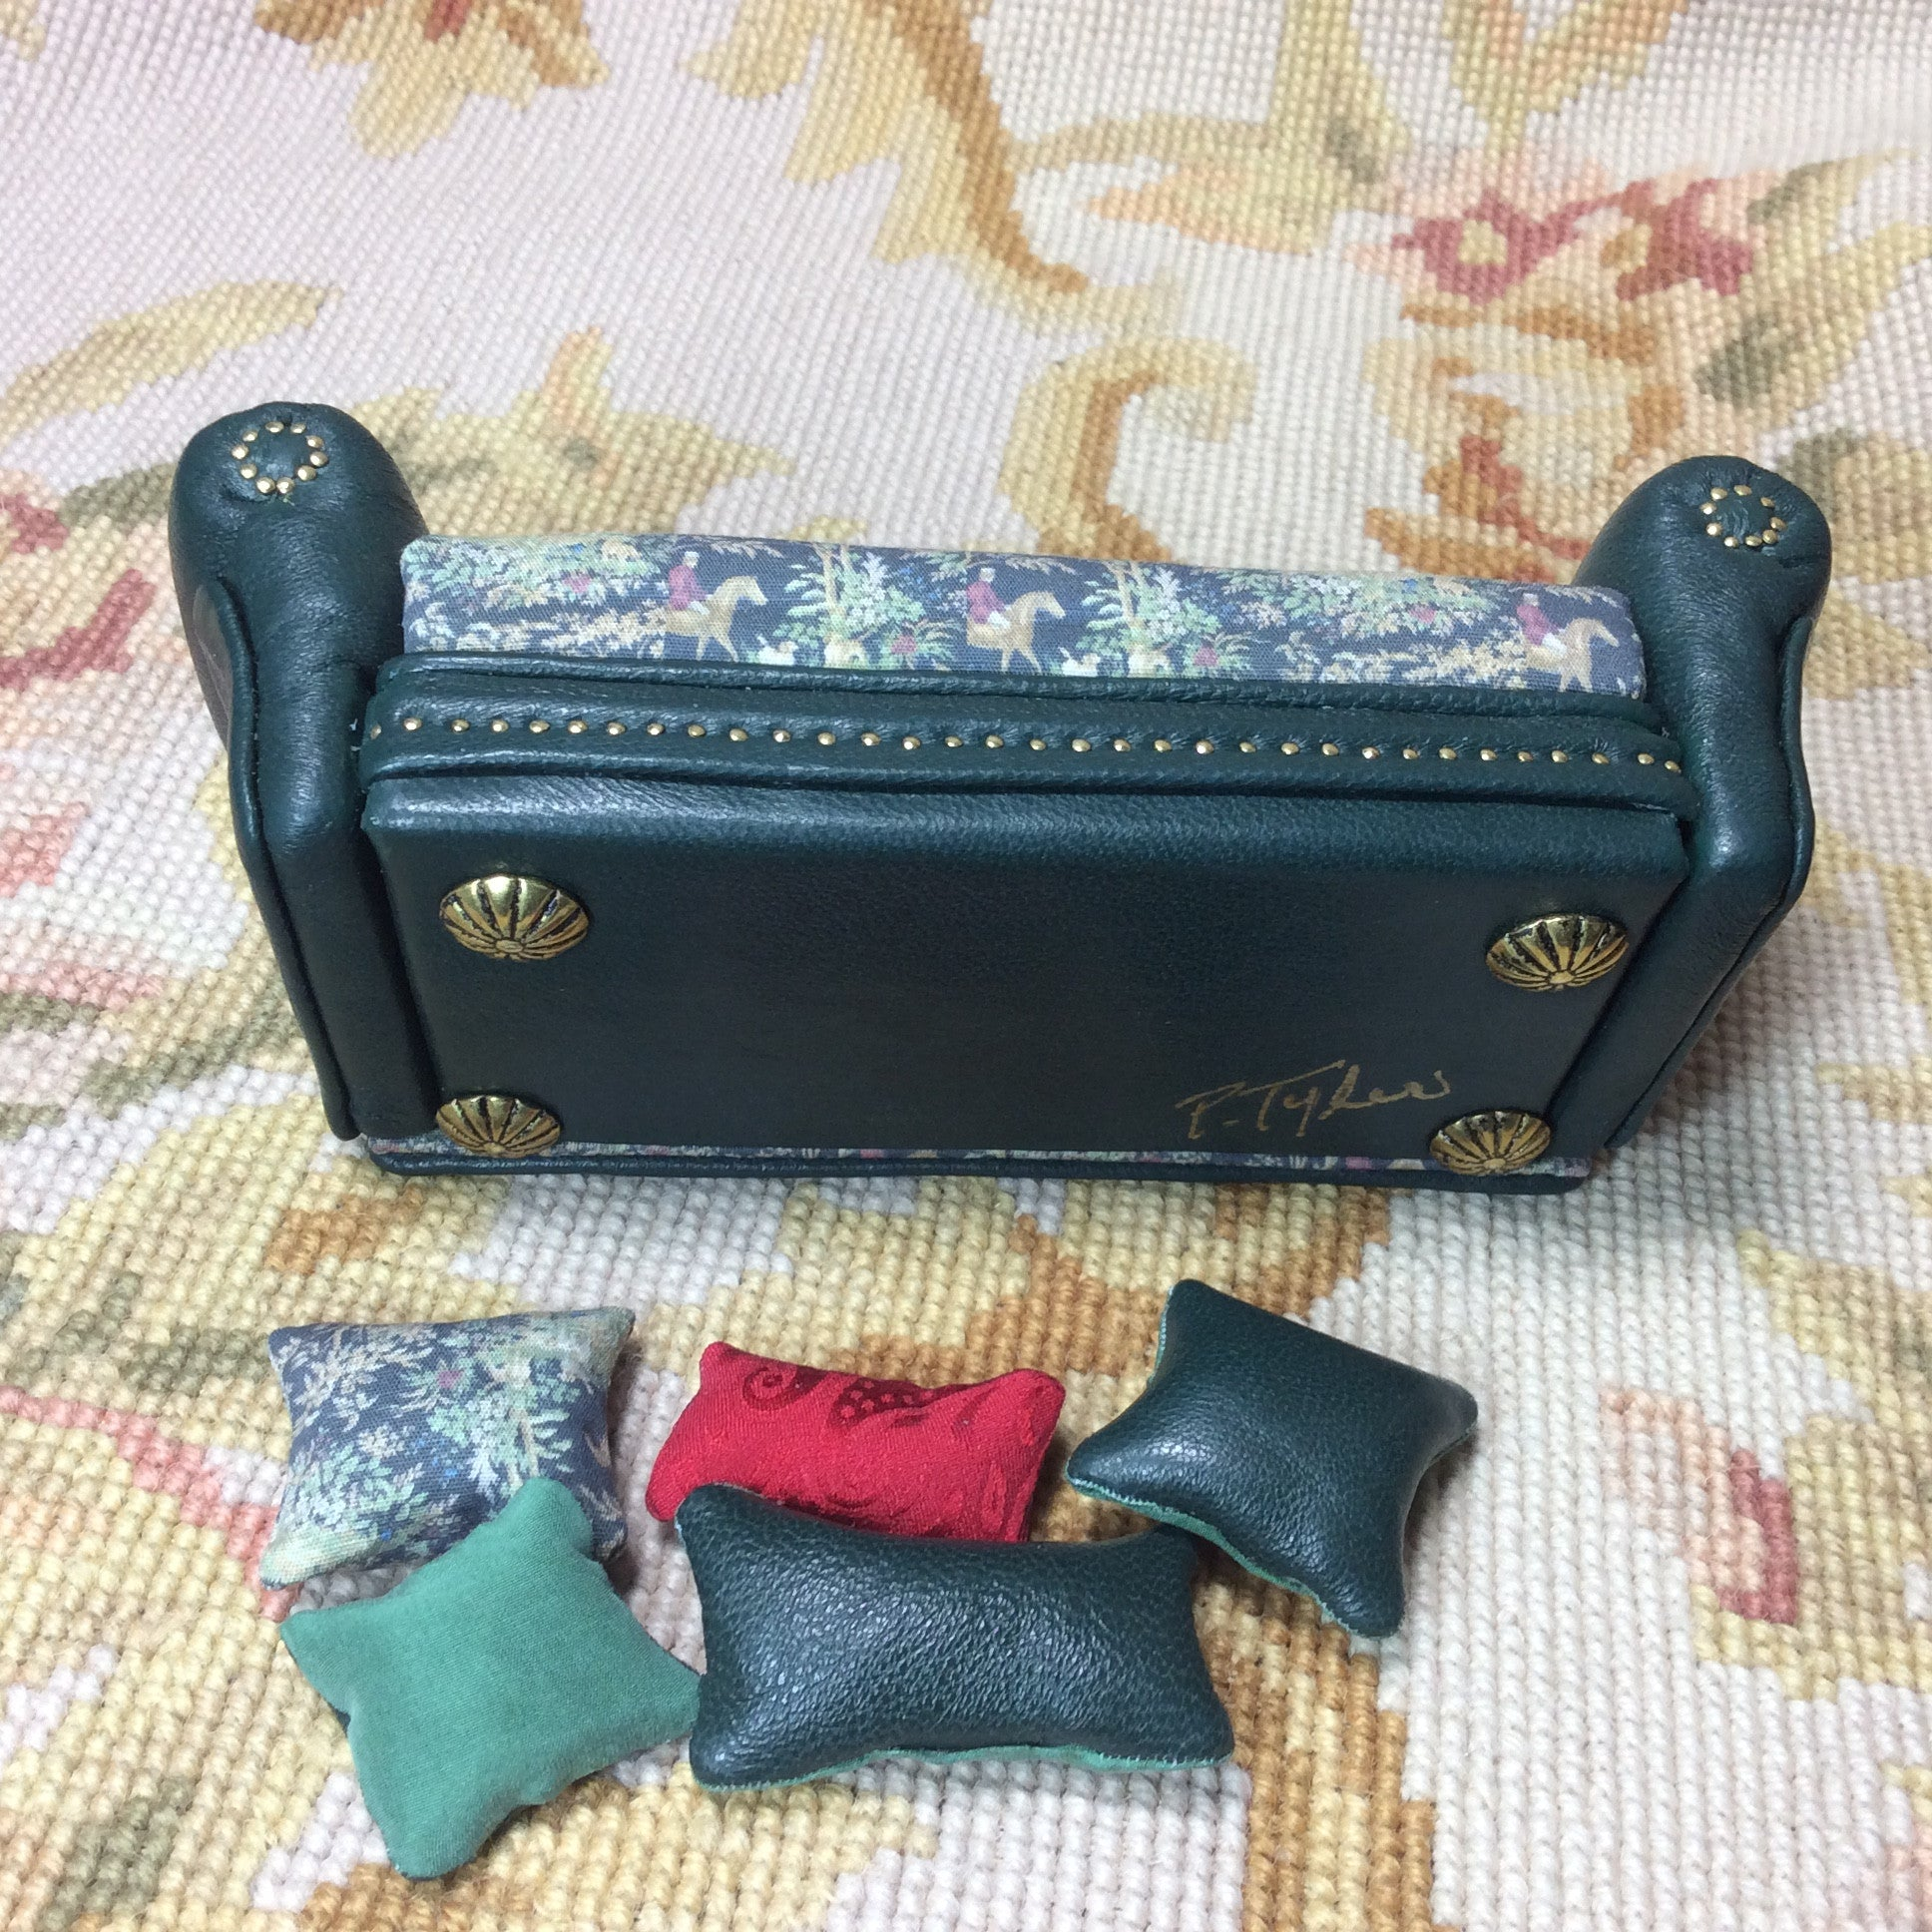 Sofa Couch Lounge Divan Settee Leather & Hunt Fabric with Pillows 1:12 Scale SPECIAL ORDER  Dollhouse Miniature